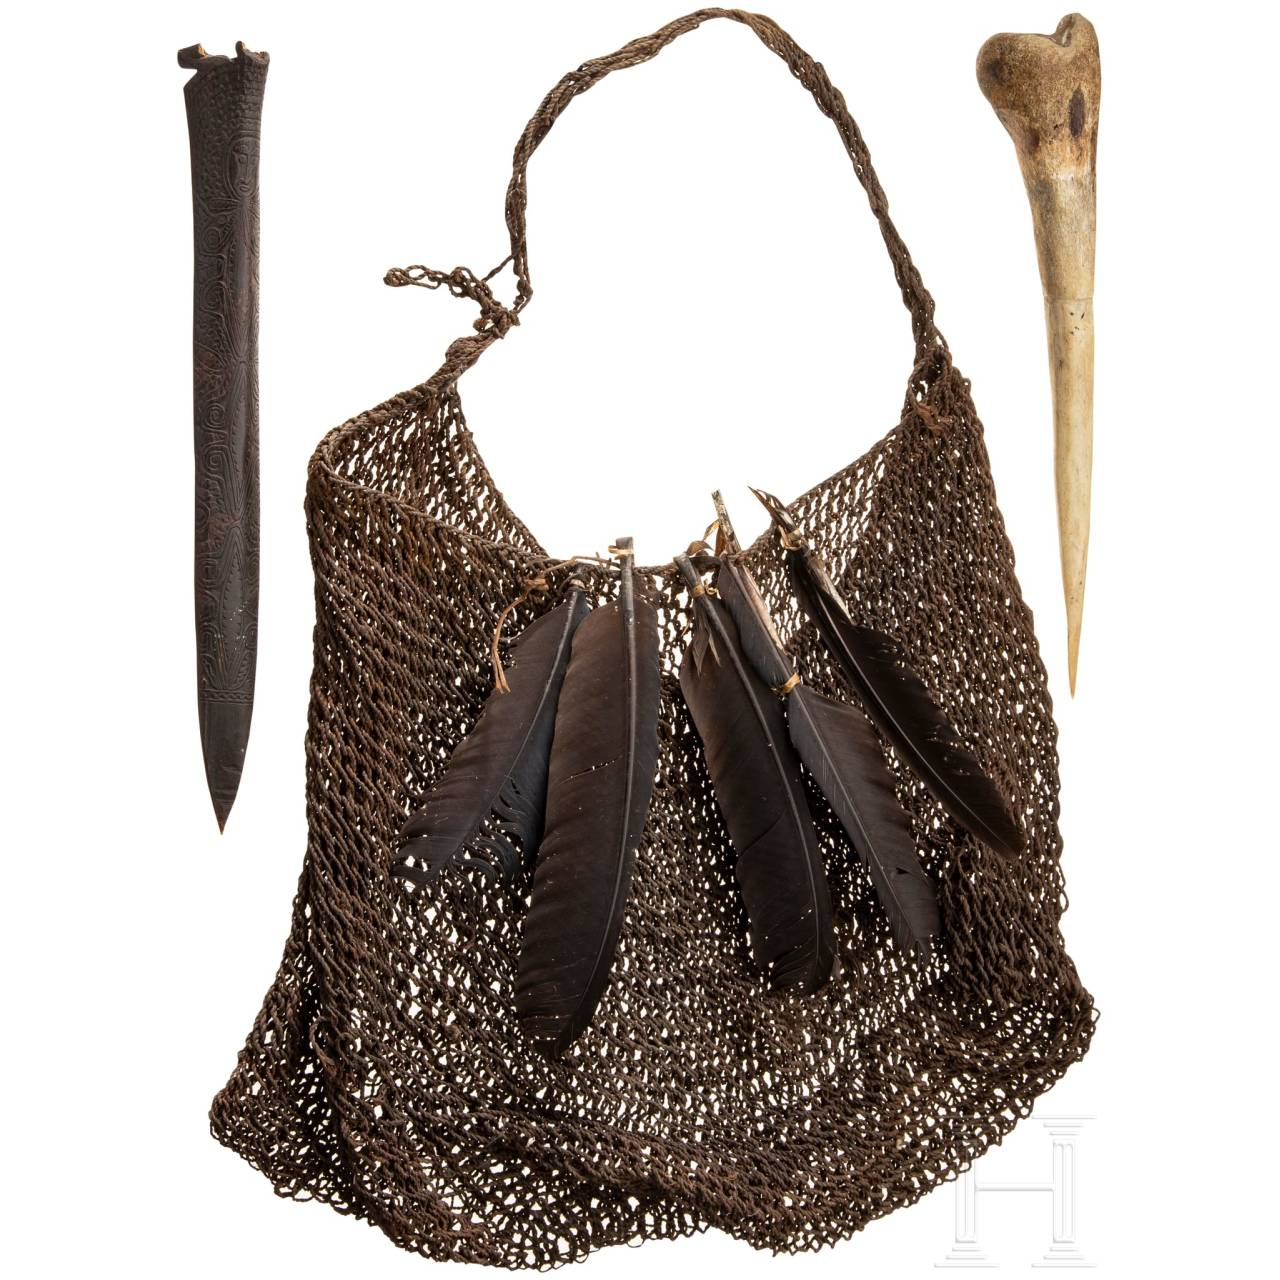 A hunting bag and two daggers, Papua New Guinea